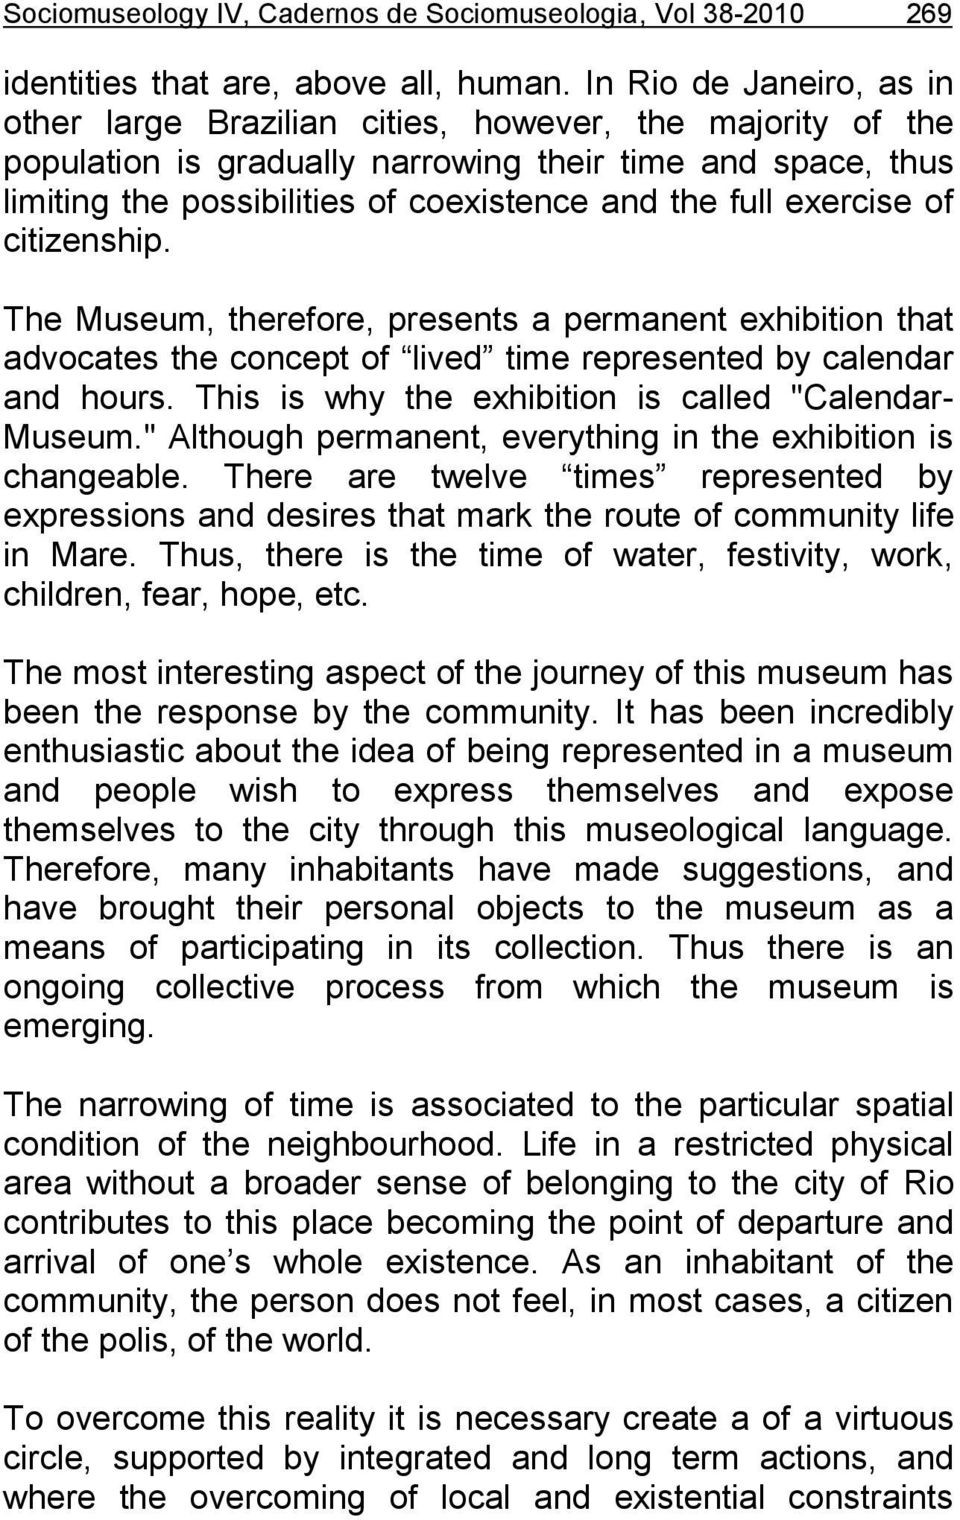 exercise of citizenship. The Museum, therefore, presents a permanent exhibition that advocates the concept of lived time represented by calendar and hours.